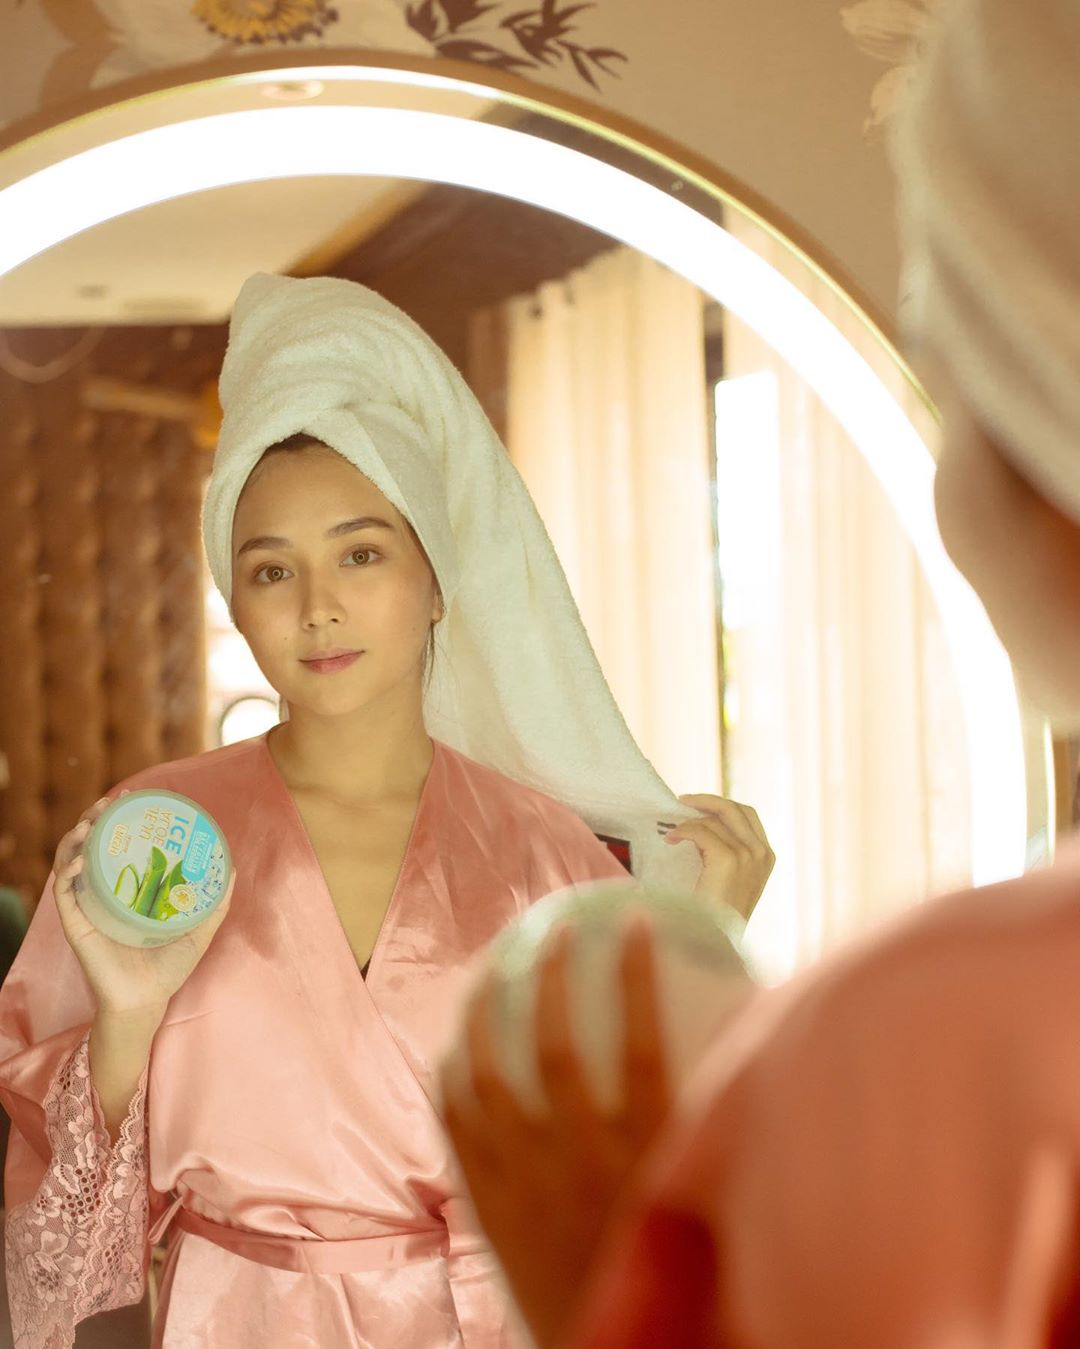 Kathryn considers Jeju Aloe Ice an important part of her self-care routine